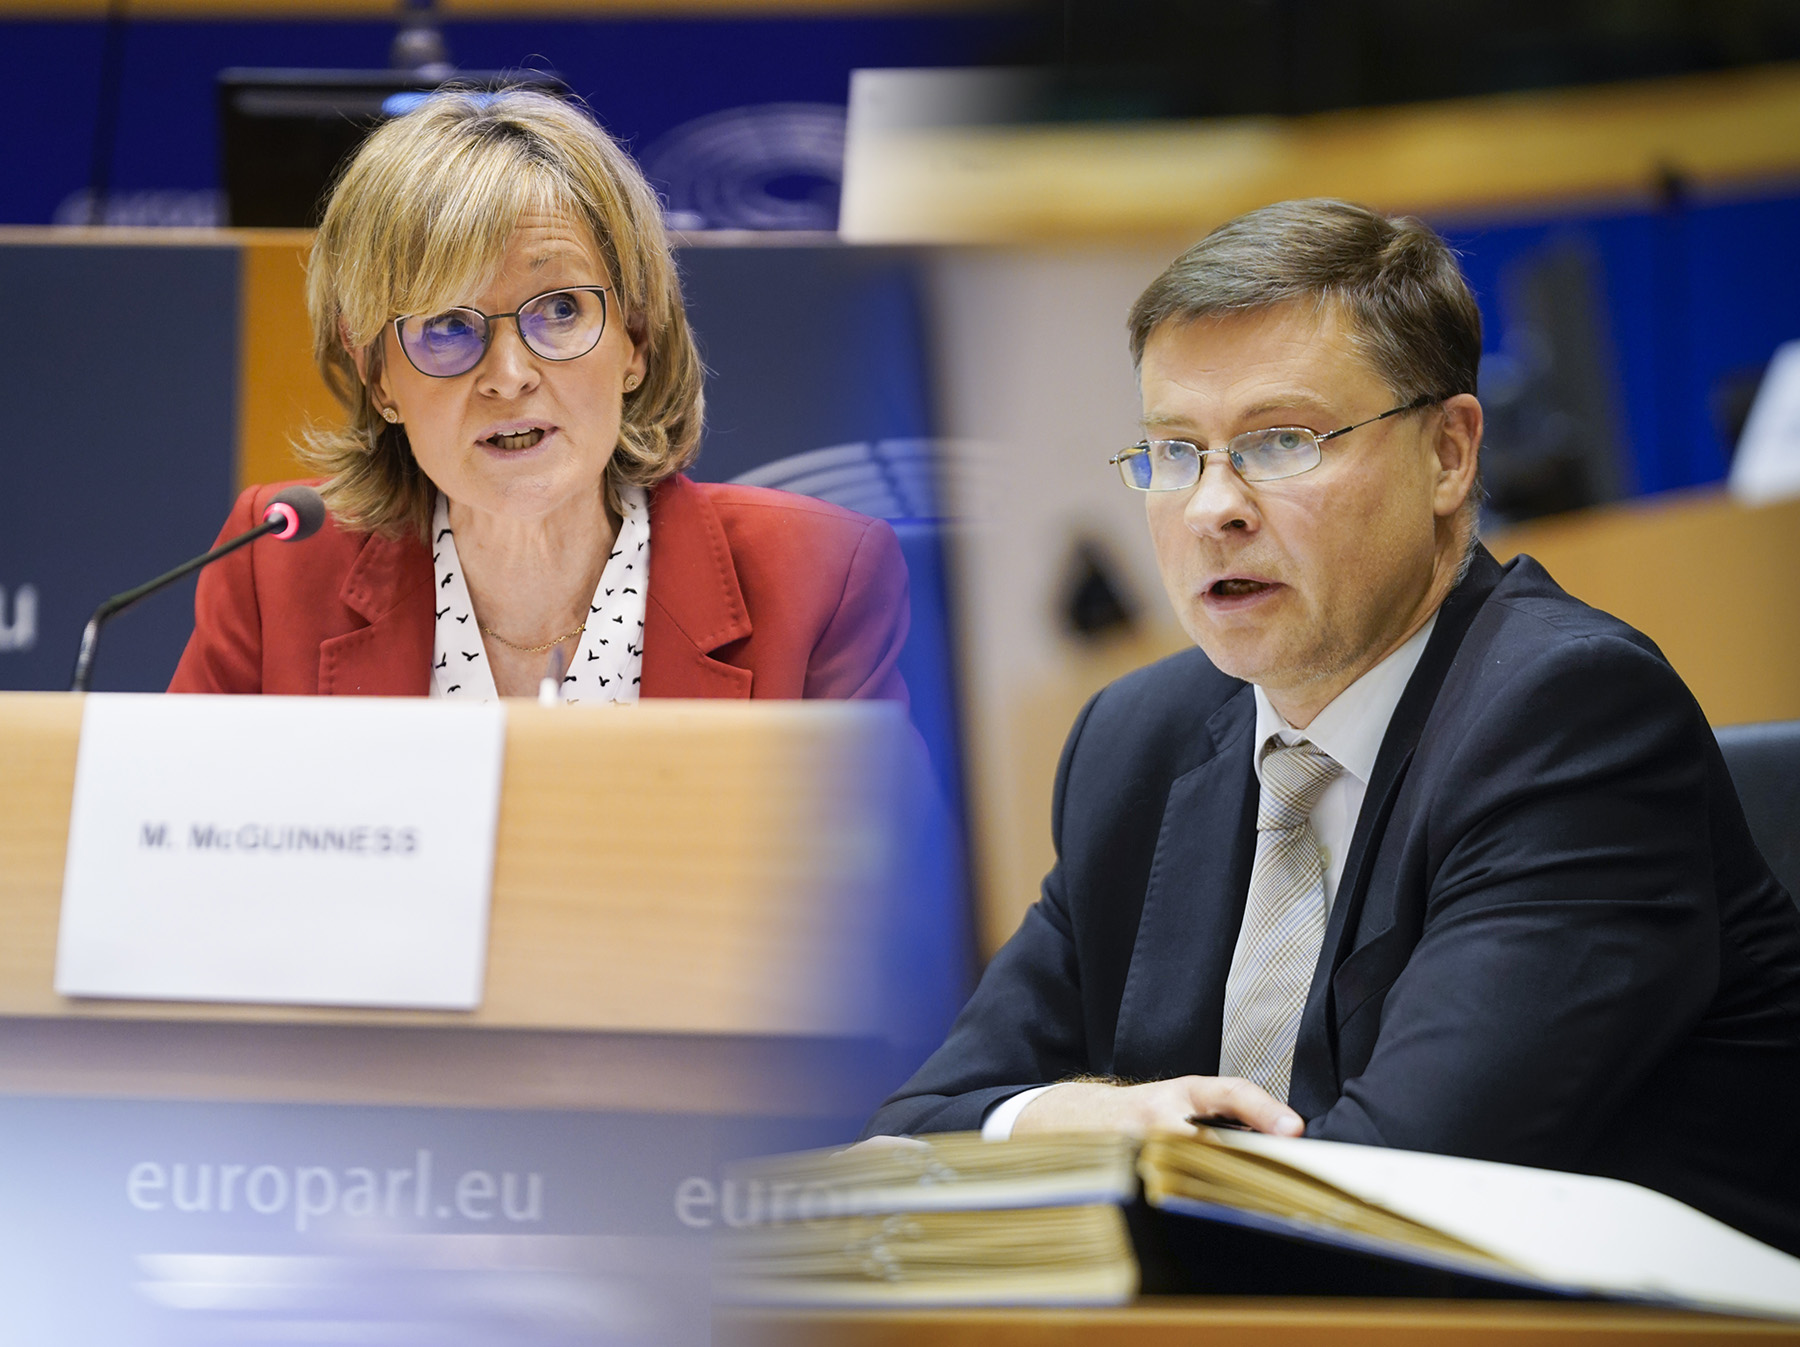 MEPs approve changes in the European Commission | News | European Parliament